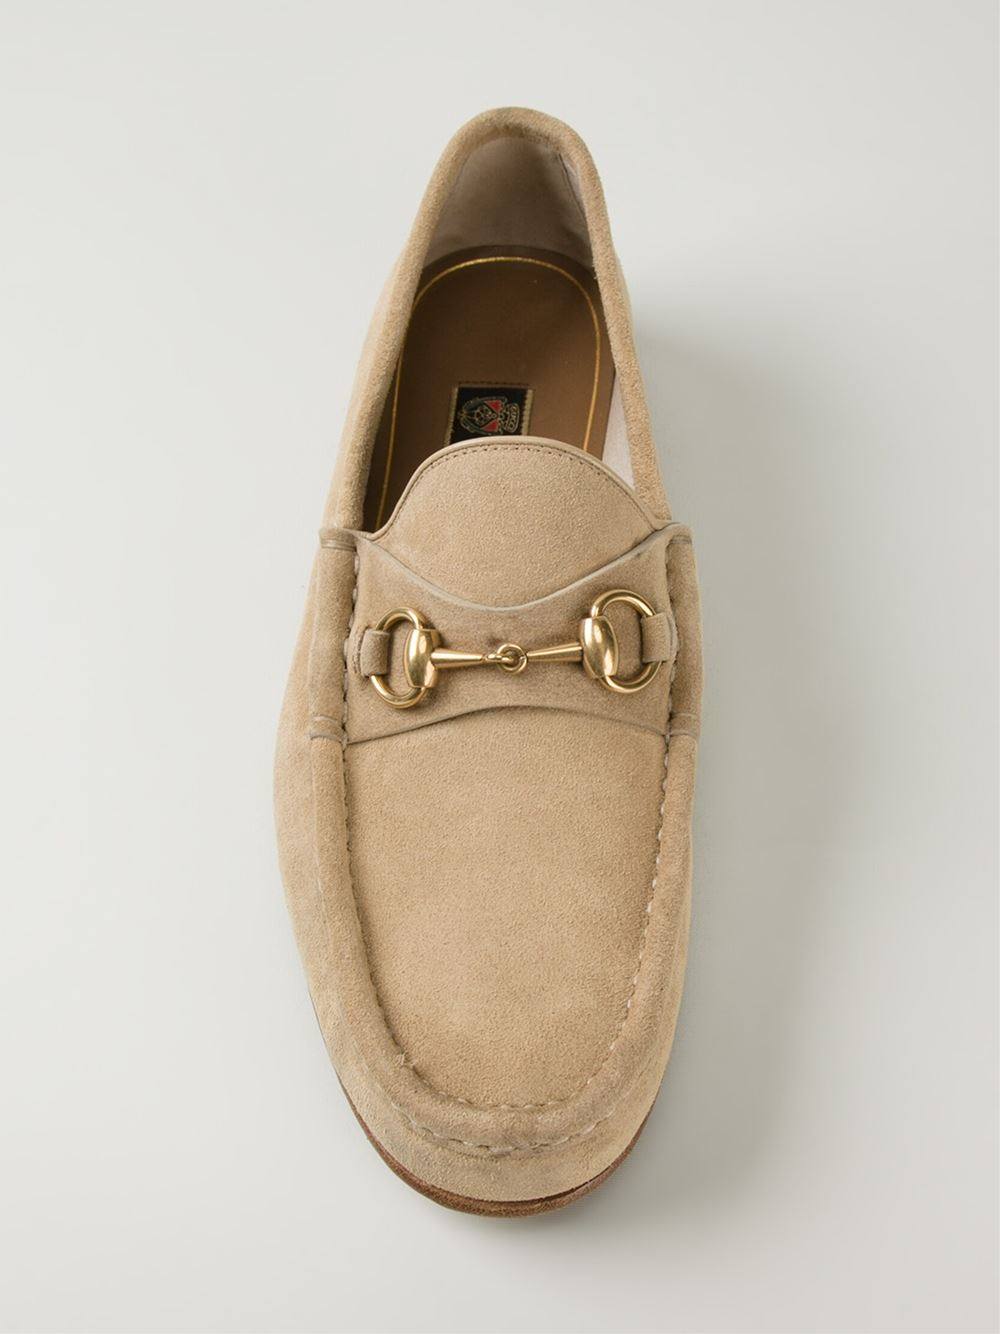 Gucci Leather Herbarium Print Loafer in Natural for Men - Lyst